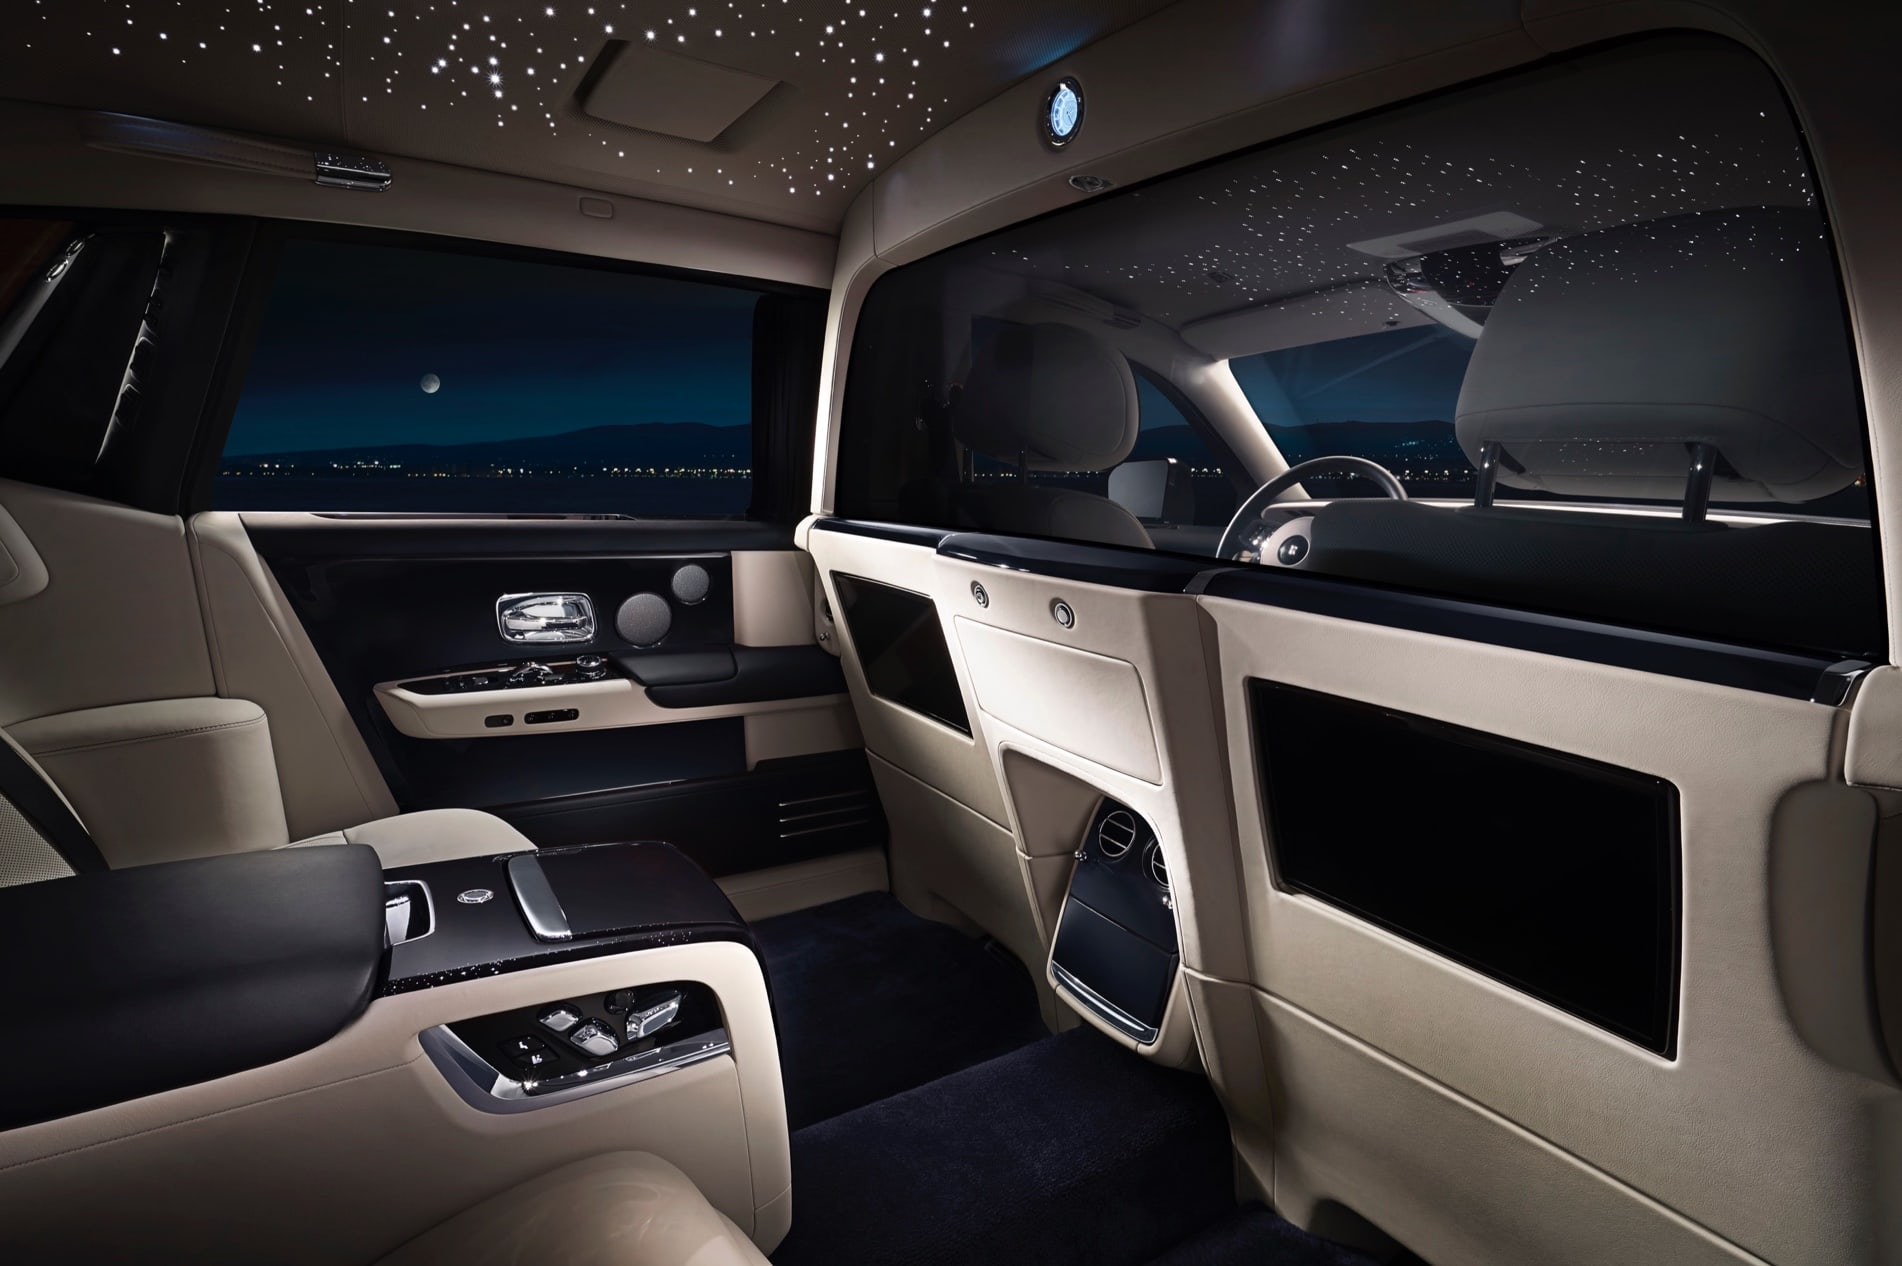 A inside view of the Rolls-Royce's Phantom suite.